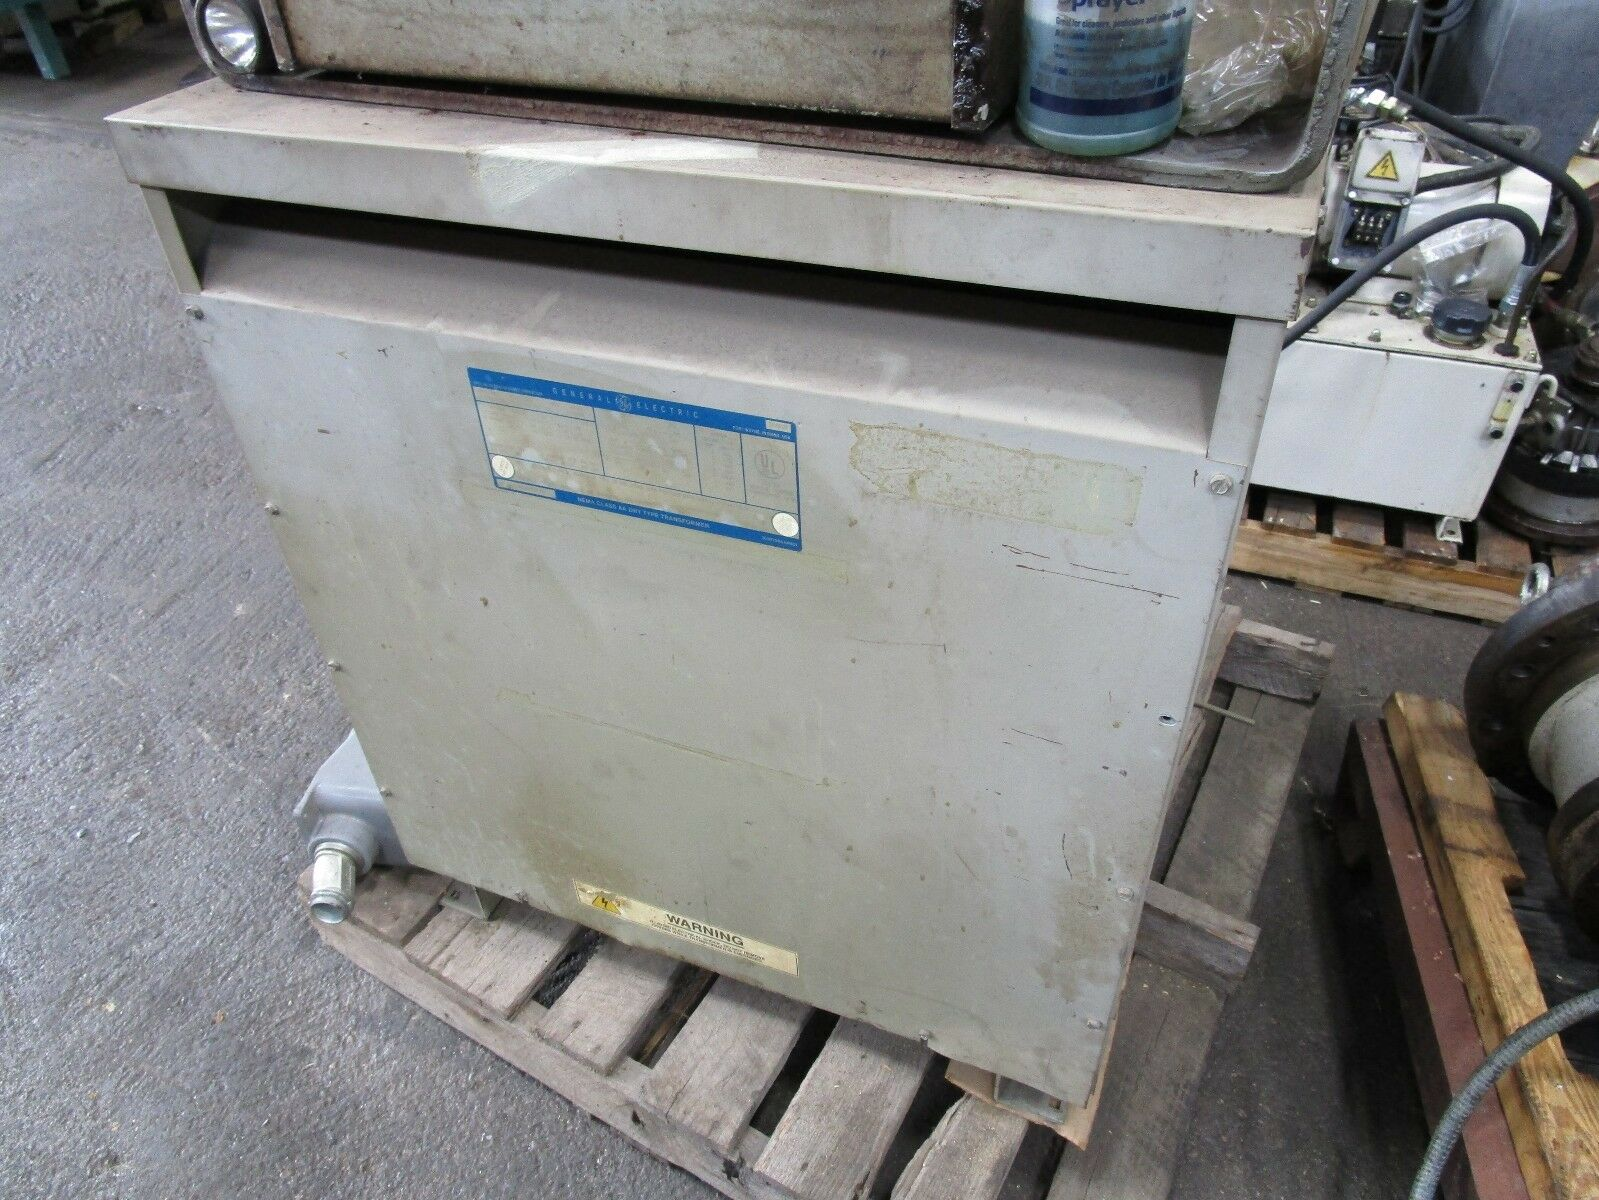 63 KVA 460 Prim to 509 Sec 3-Phase Transformer, Made by GE, Model 9T2301130, 63 KVA, 3-Phase, 460 Volt Input Delta, 509 Volt Output Line to Line Y, 294 Volt Line to Ground, Multi tap.